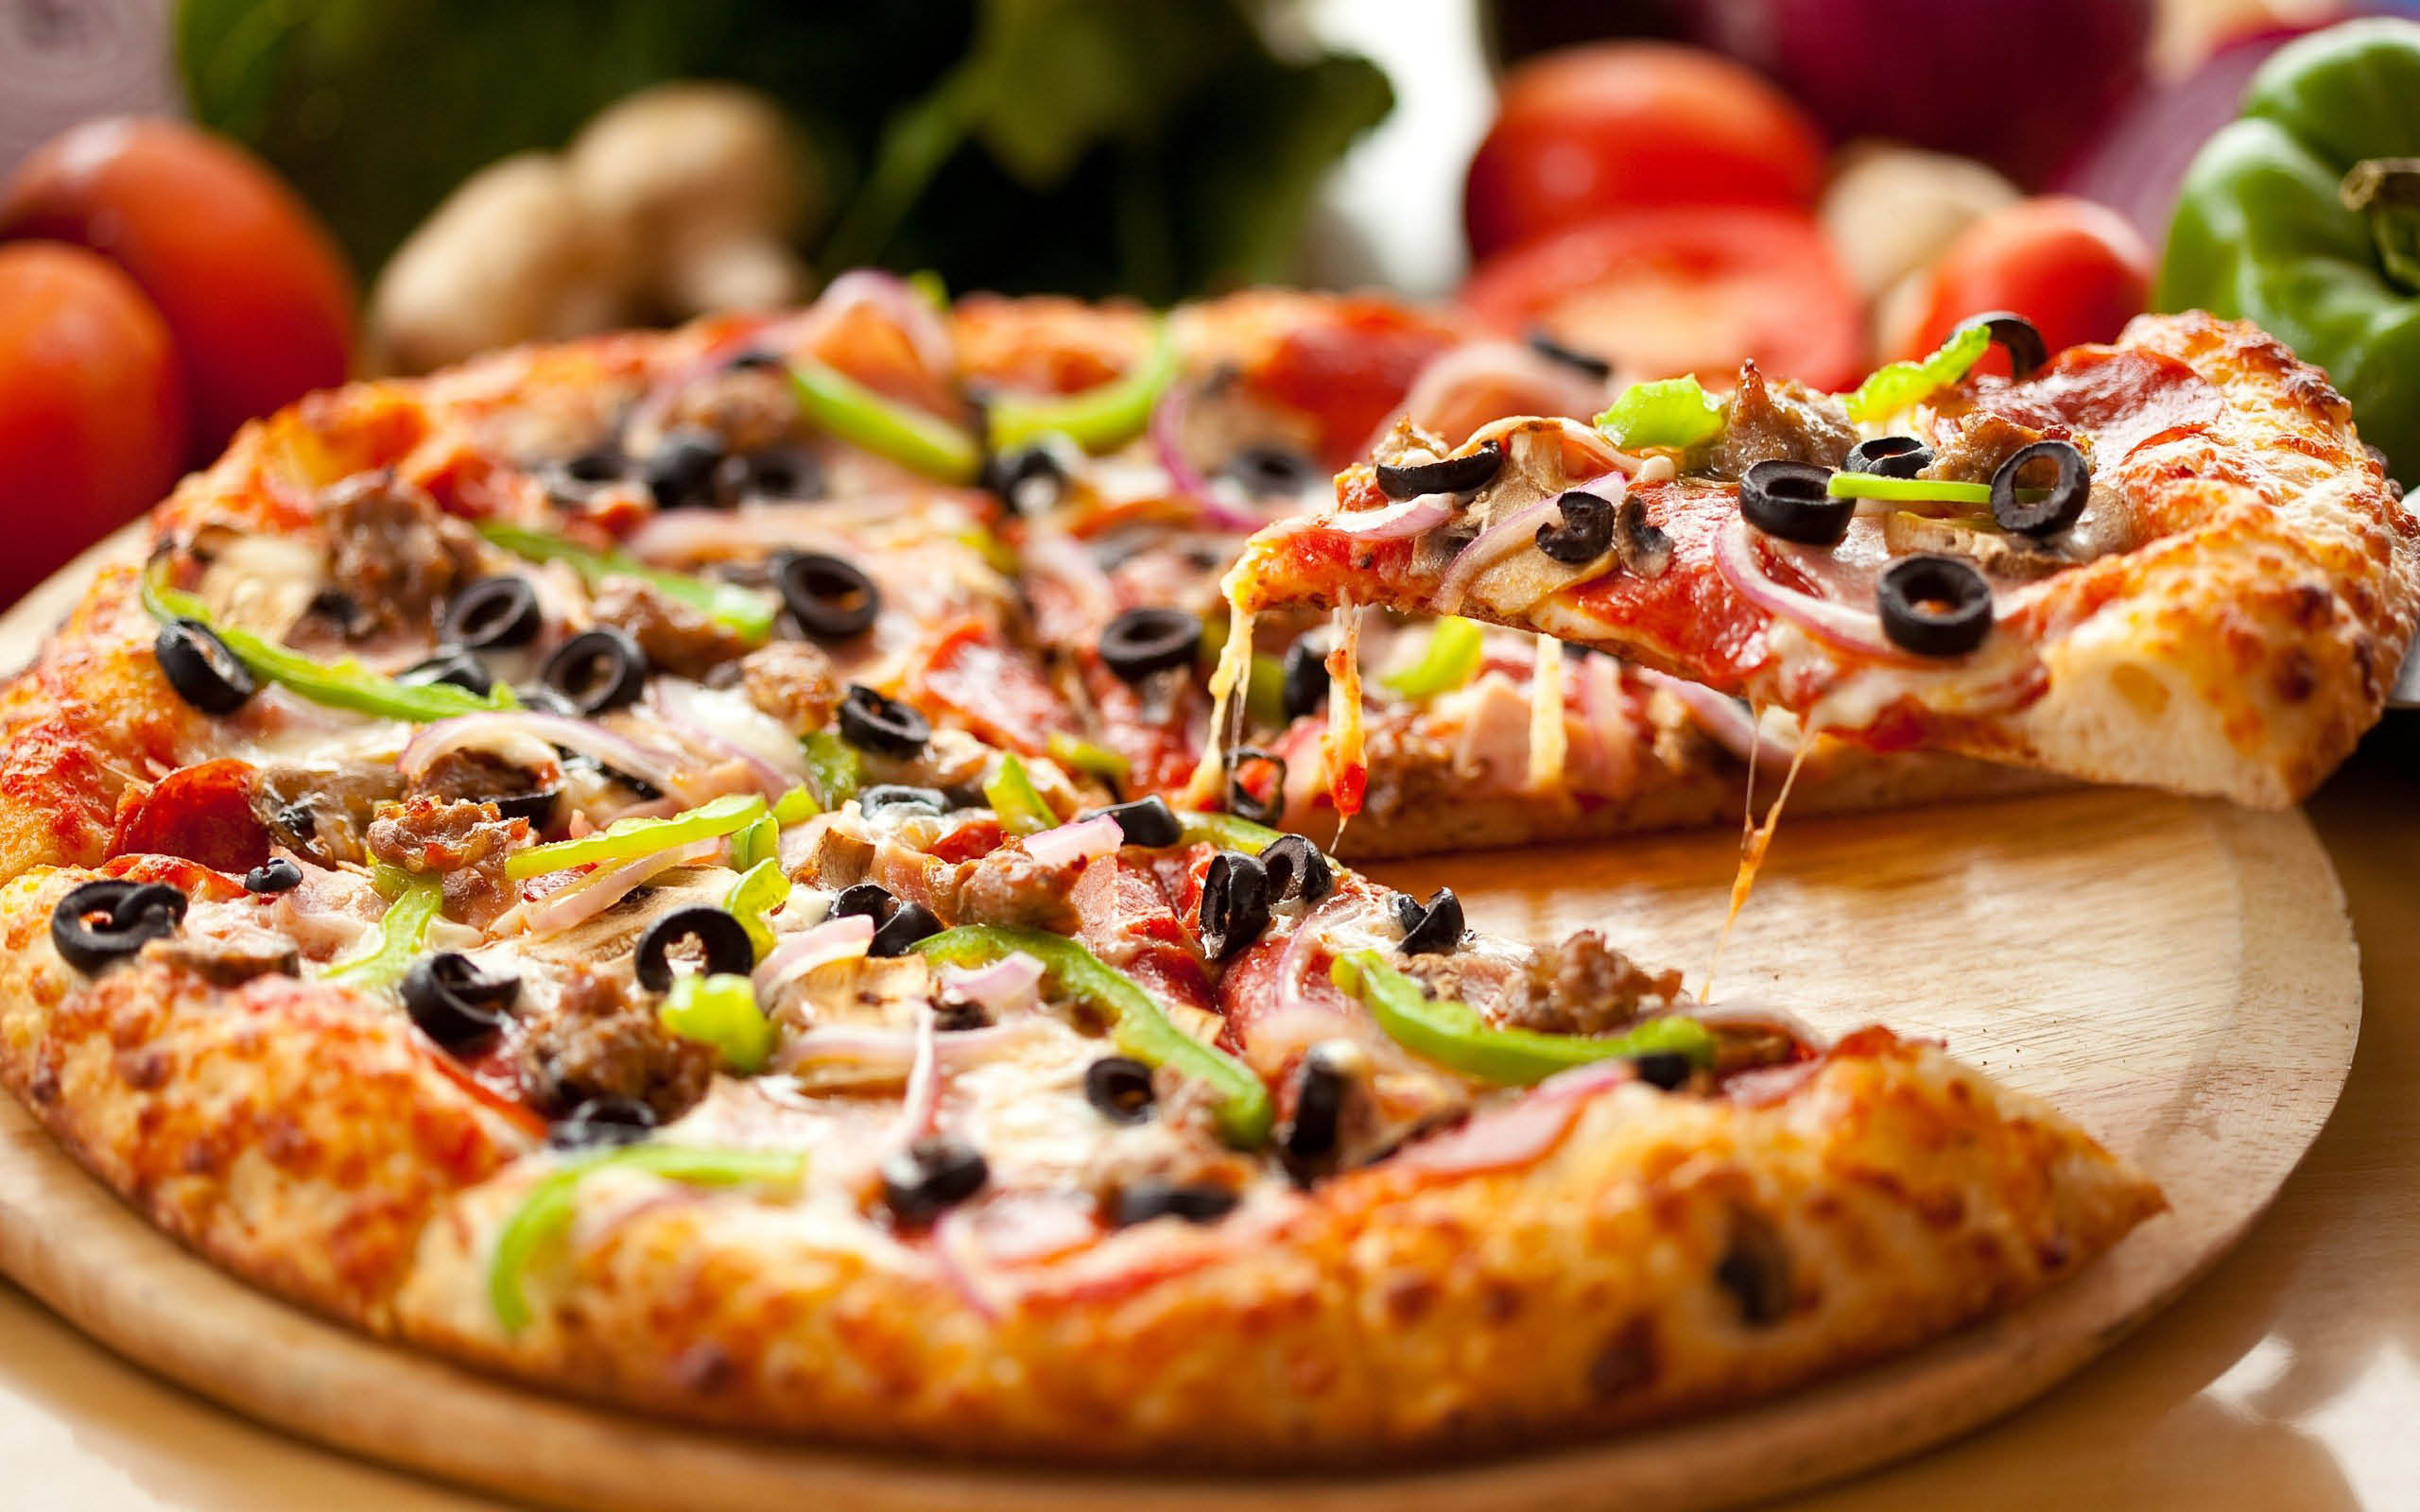 pizza, subs, pasta, delivery, restaurant, wings, italian food; manassas, va